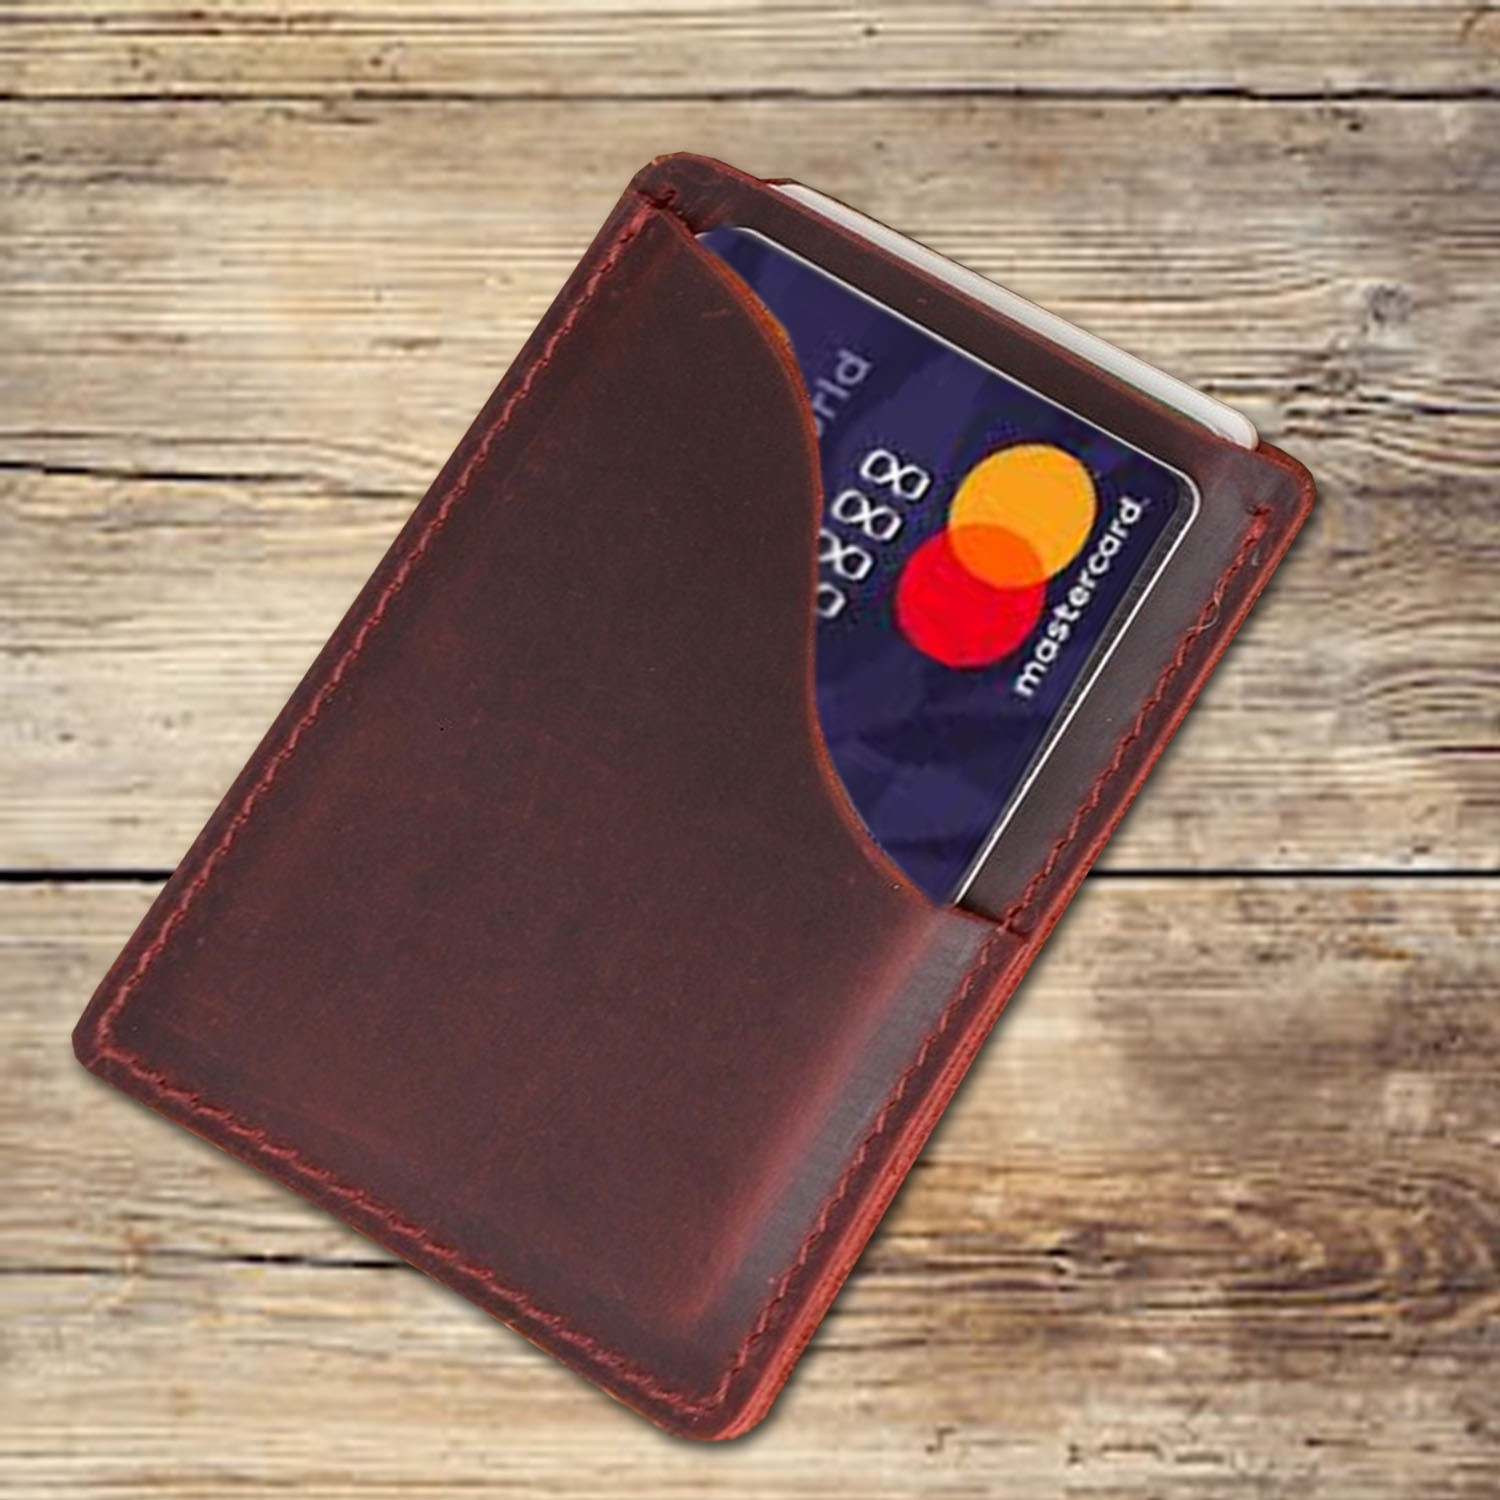 Best Leather Cases And Covers For Ipad Air 2